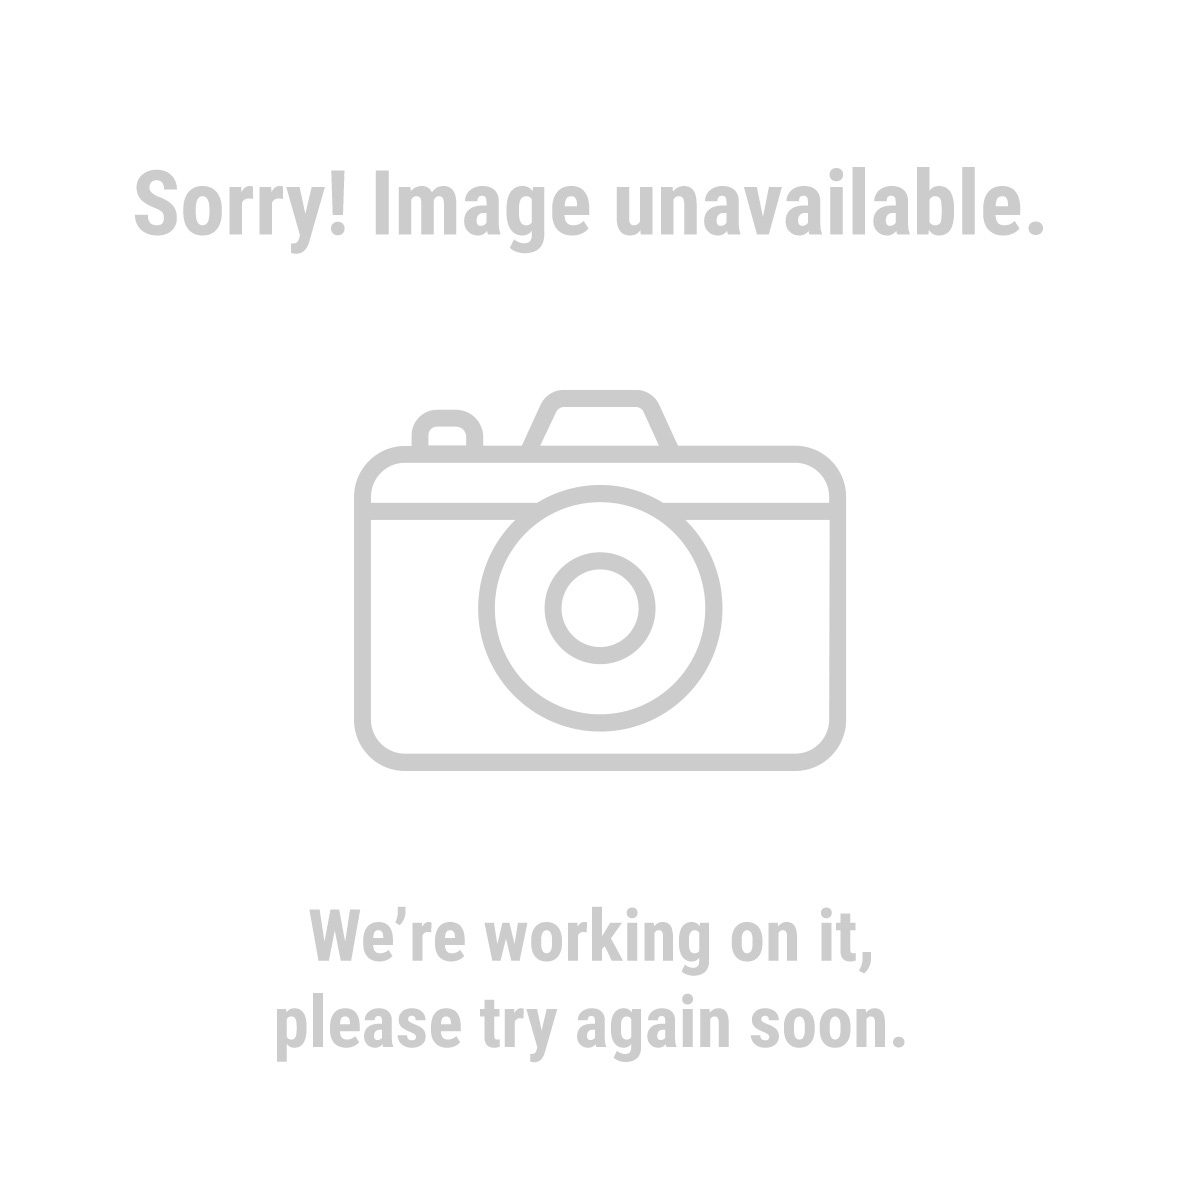 Meguiar's 62226 16 Oz. Meguiar's Yellow Wax